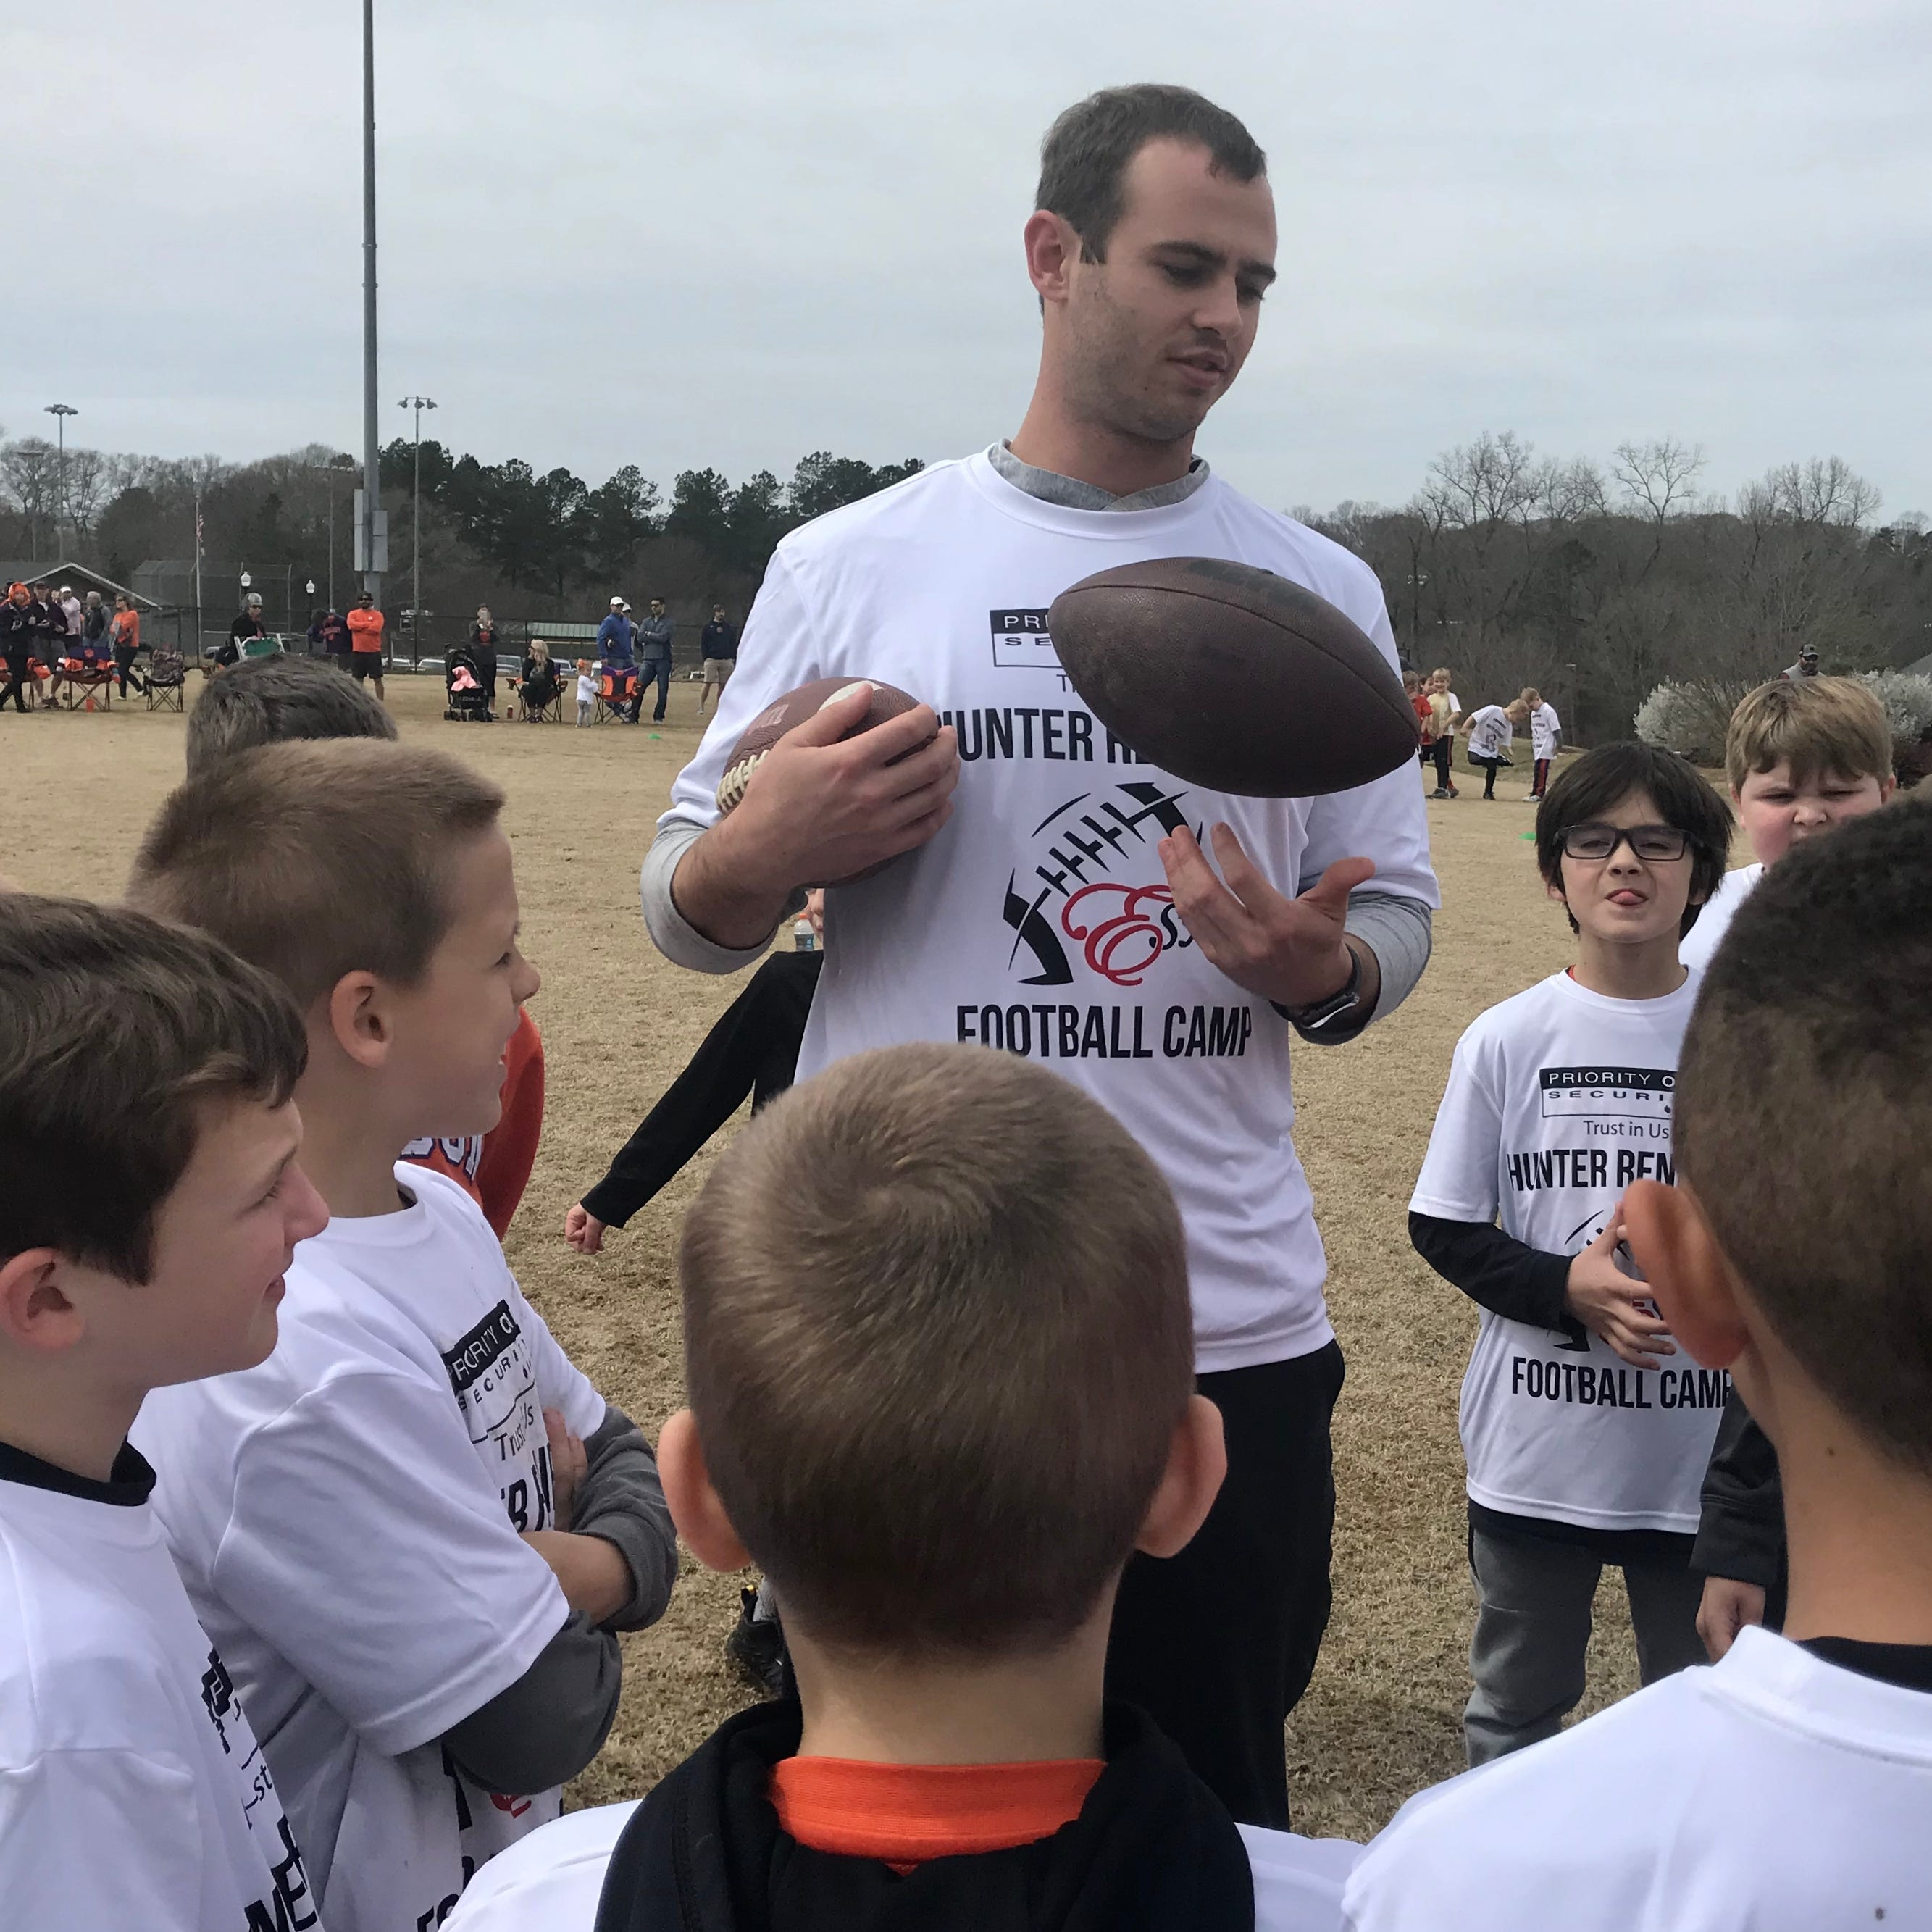 Dream team? Ex-Clemson football standout Hunter Renfrow 'woke up' to Patriots, Tom Brady